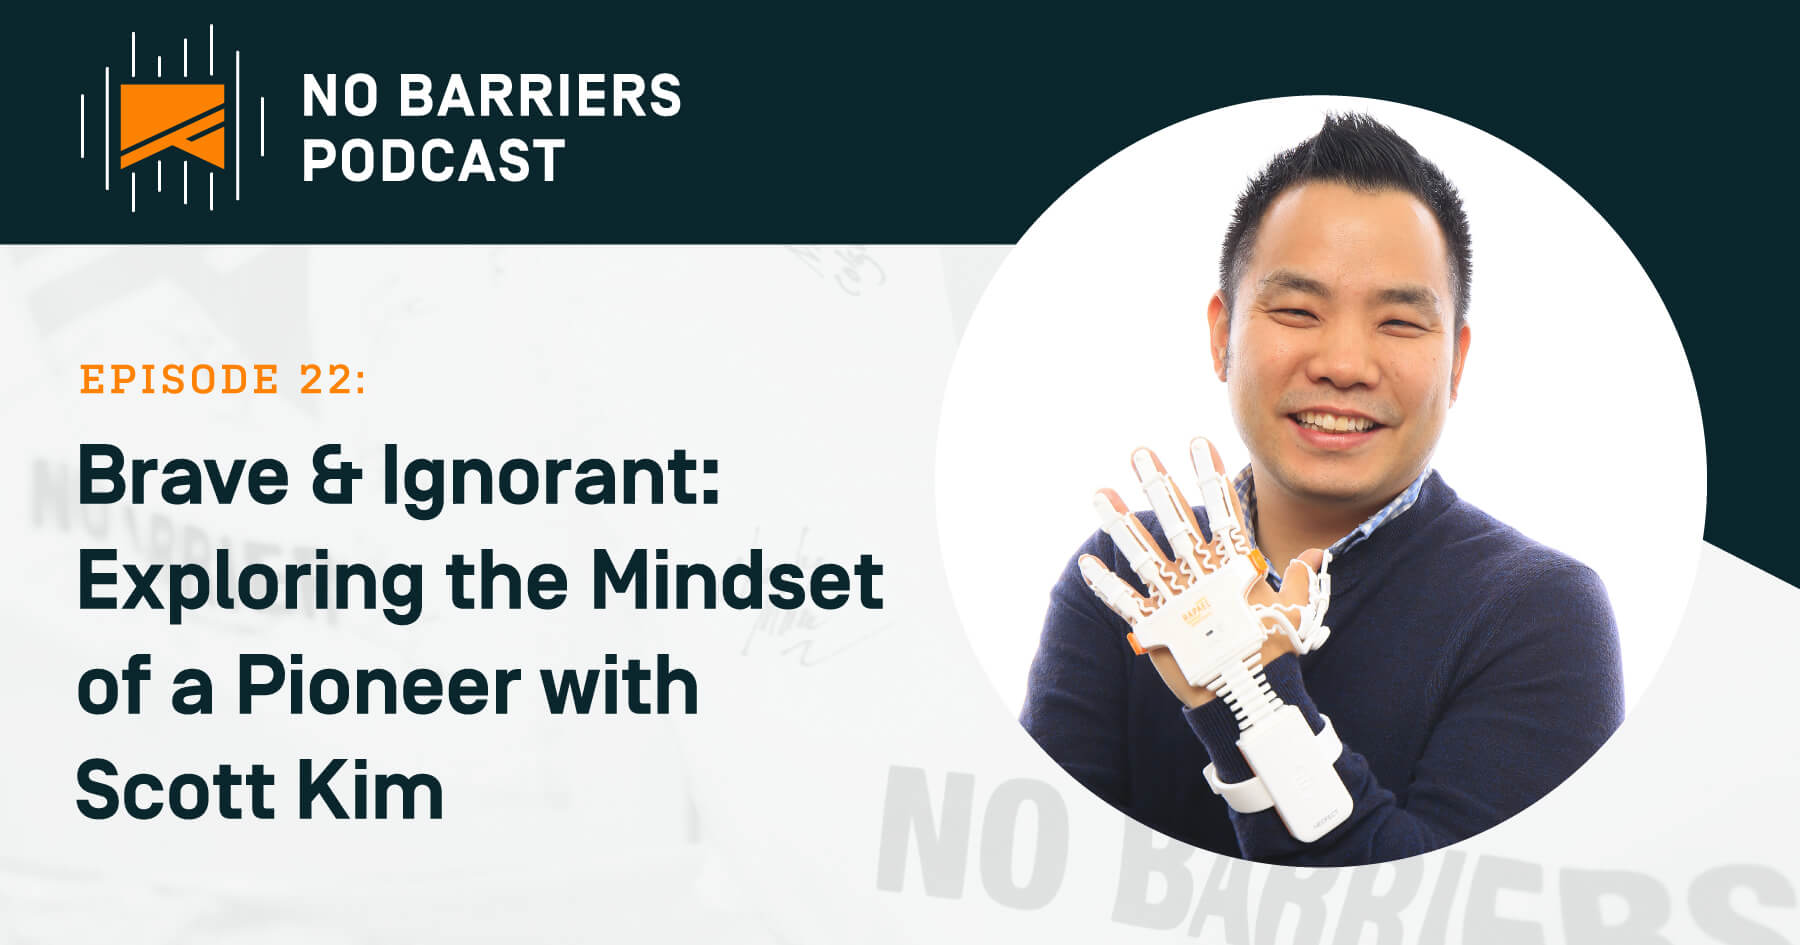 Graphic of Scott Kim for No Barriers Podcast